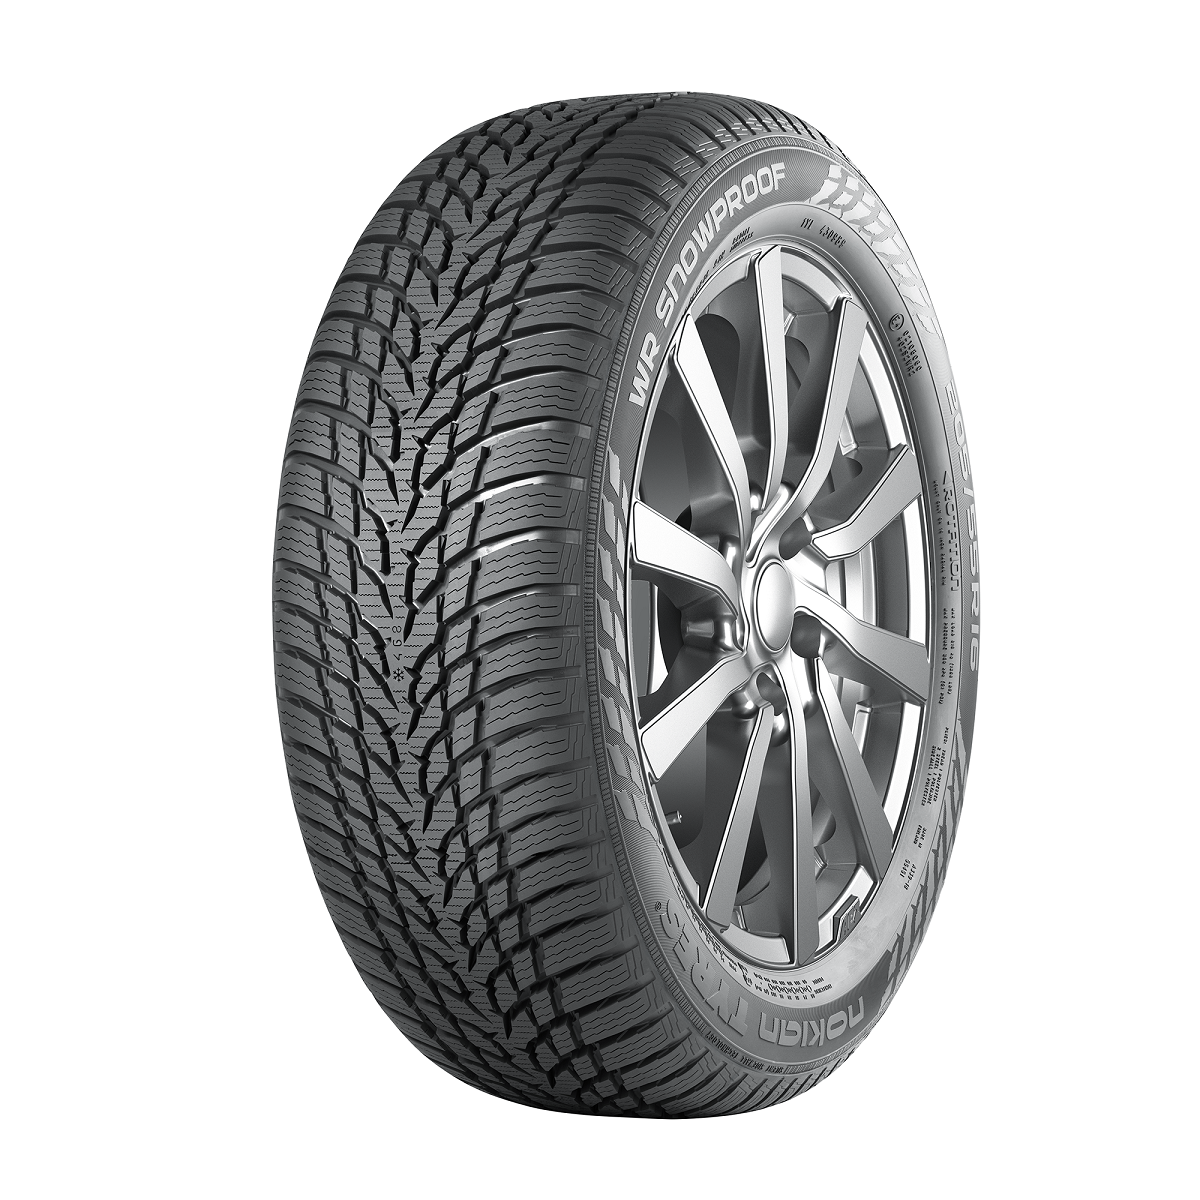 Gomme Nuove Nokian 175/65 R14 82T WR Snowproof M+S pneumatici nuovi Invernale